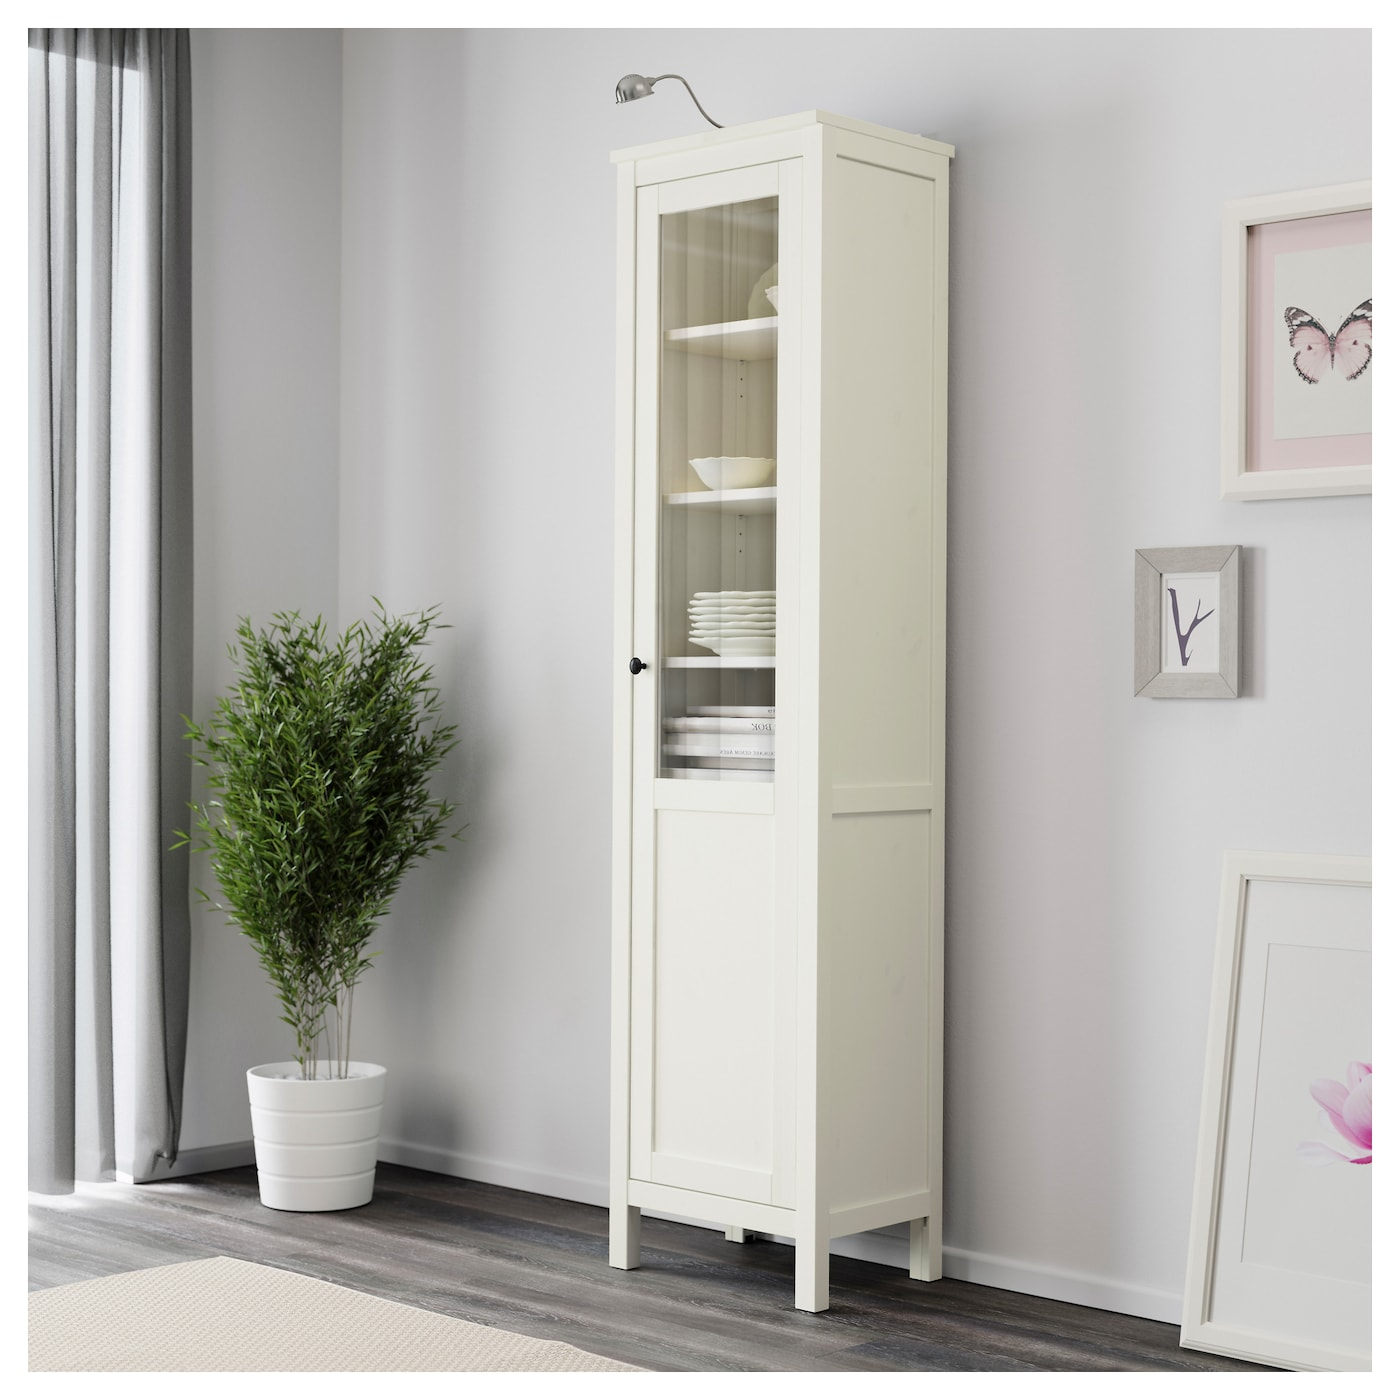 hemnes cabinet with panel glass door white stain 49x197 cm. Black Bedroom Furniture Sets. Home Design Ideas